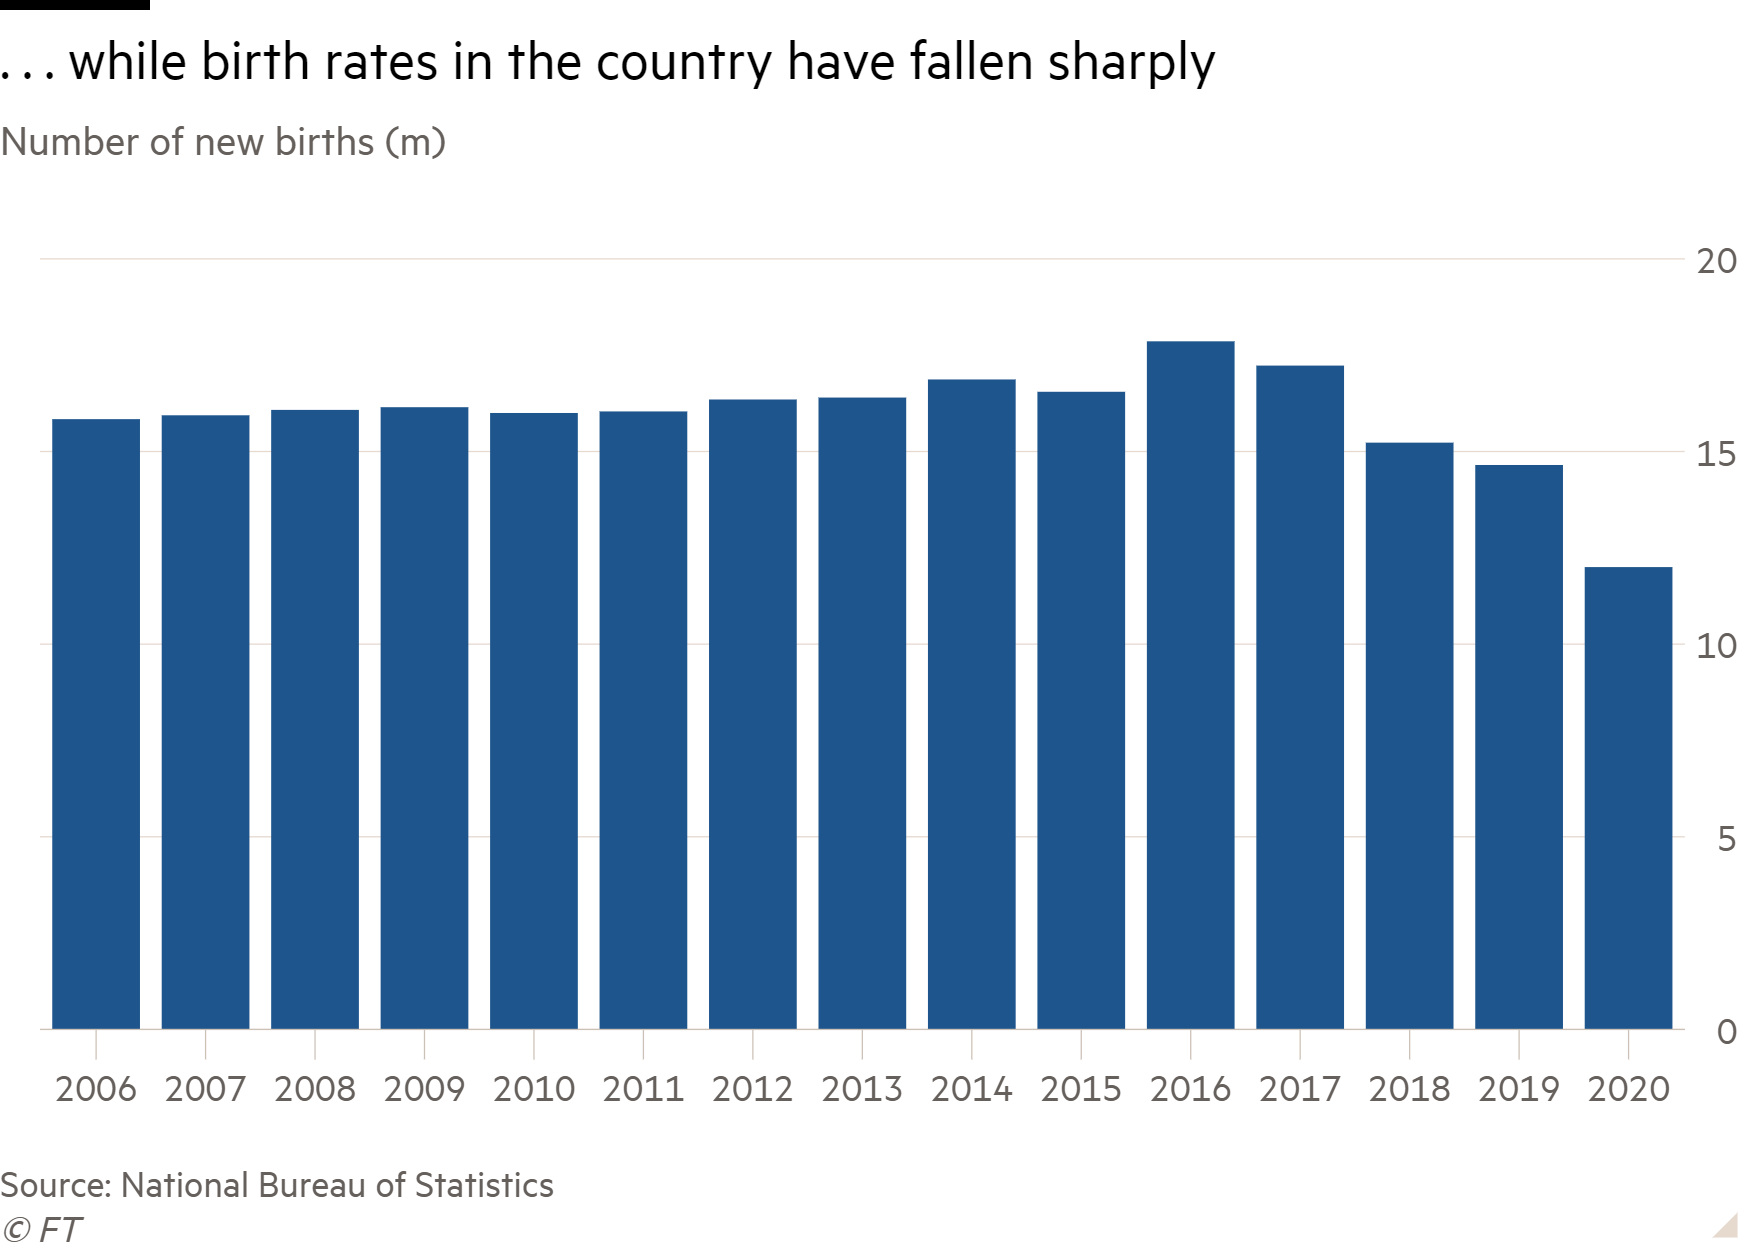 Column chart of Number of new births (m) showing ... while birth rates in the country have fallen sharply